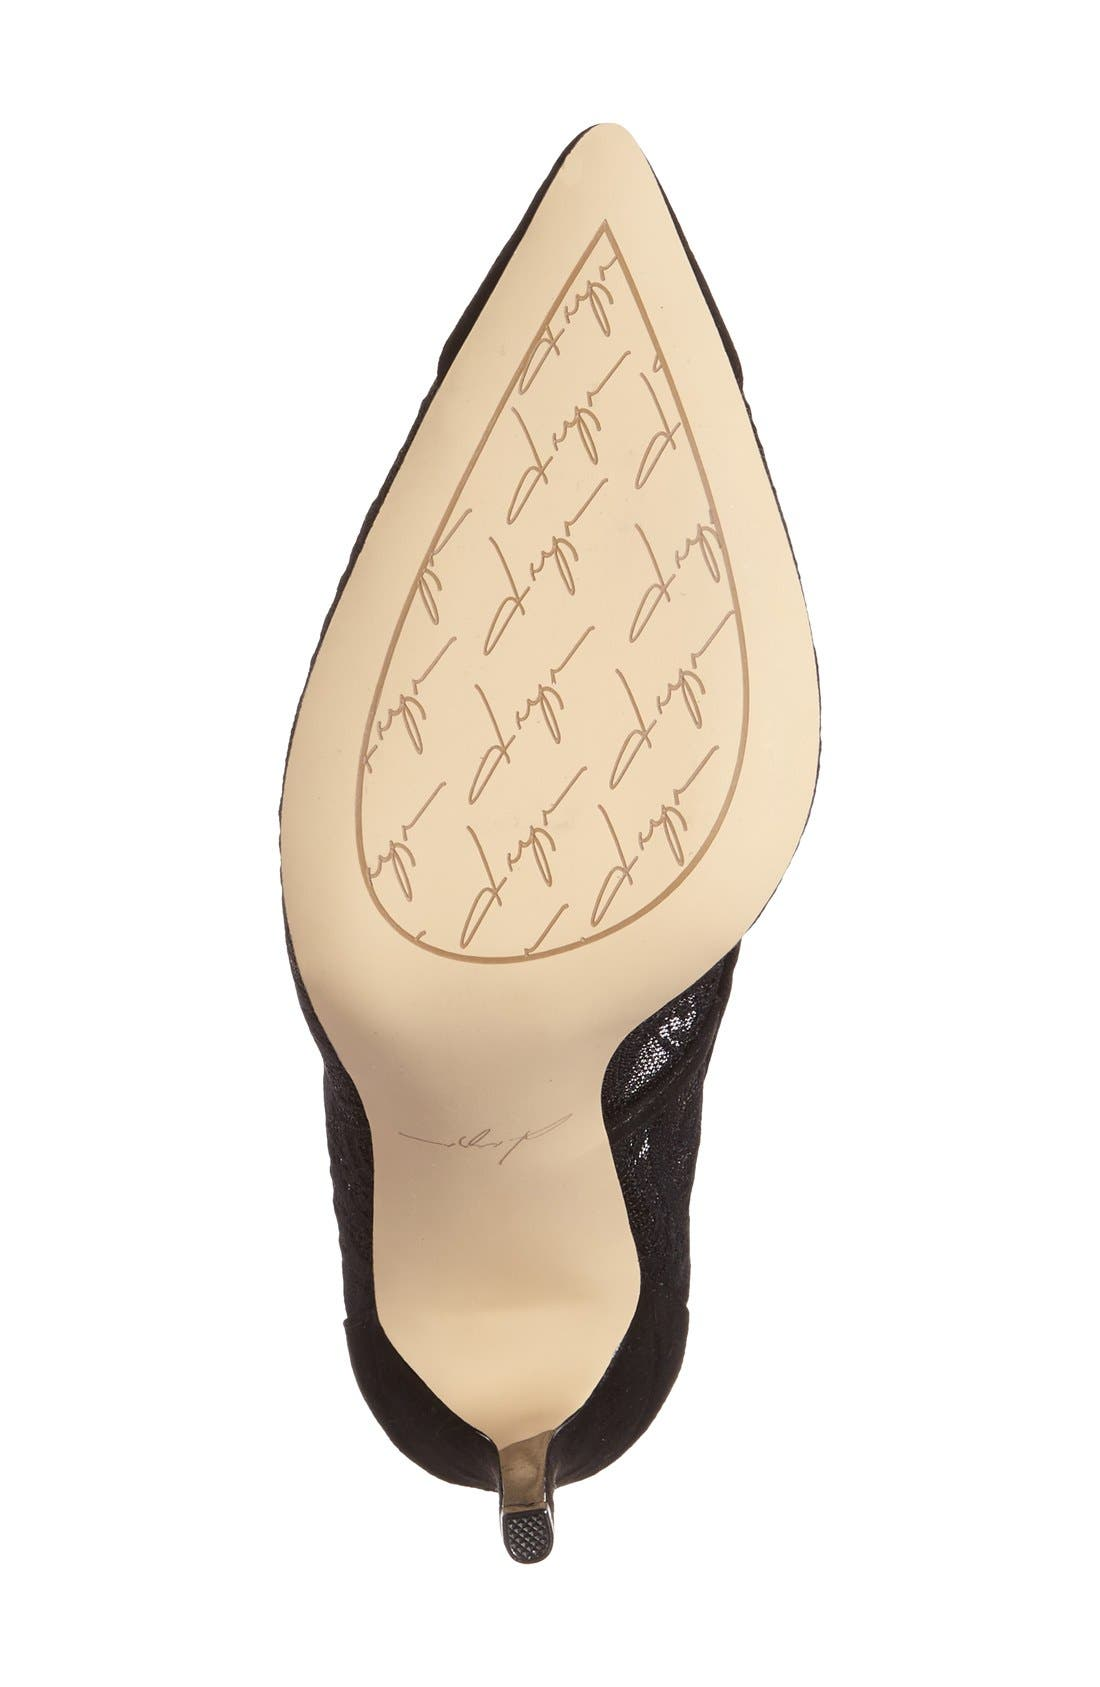 by Zendaya 'Annabelle' Pointy Toe Pump,                             Alternate thumbnail 4, color,                             Black Lace Fabric